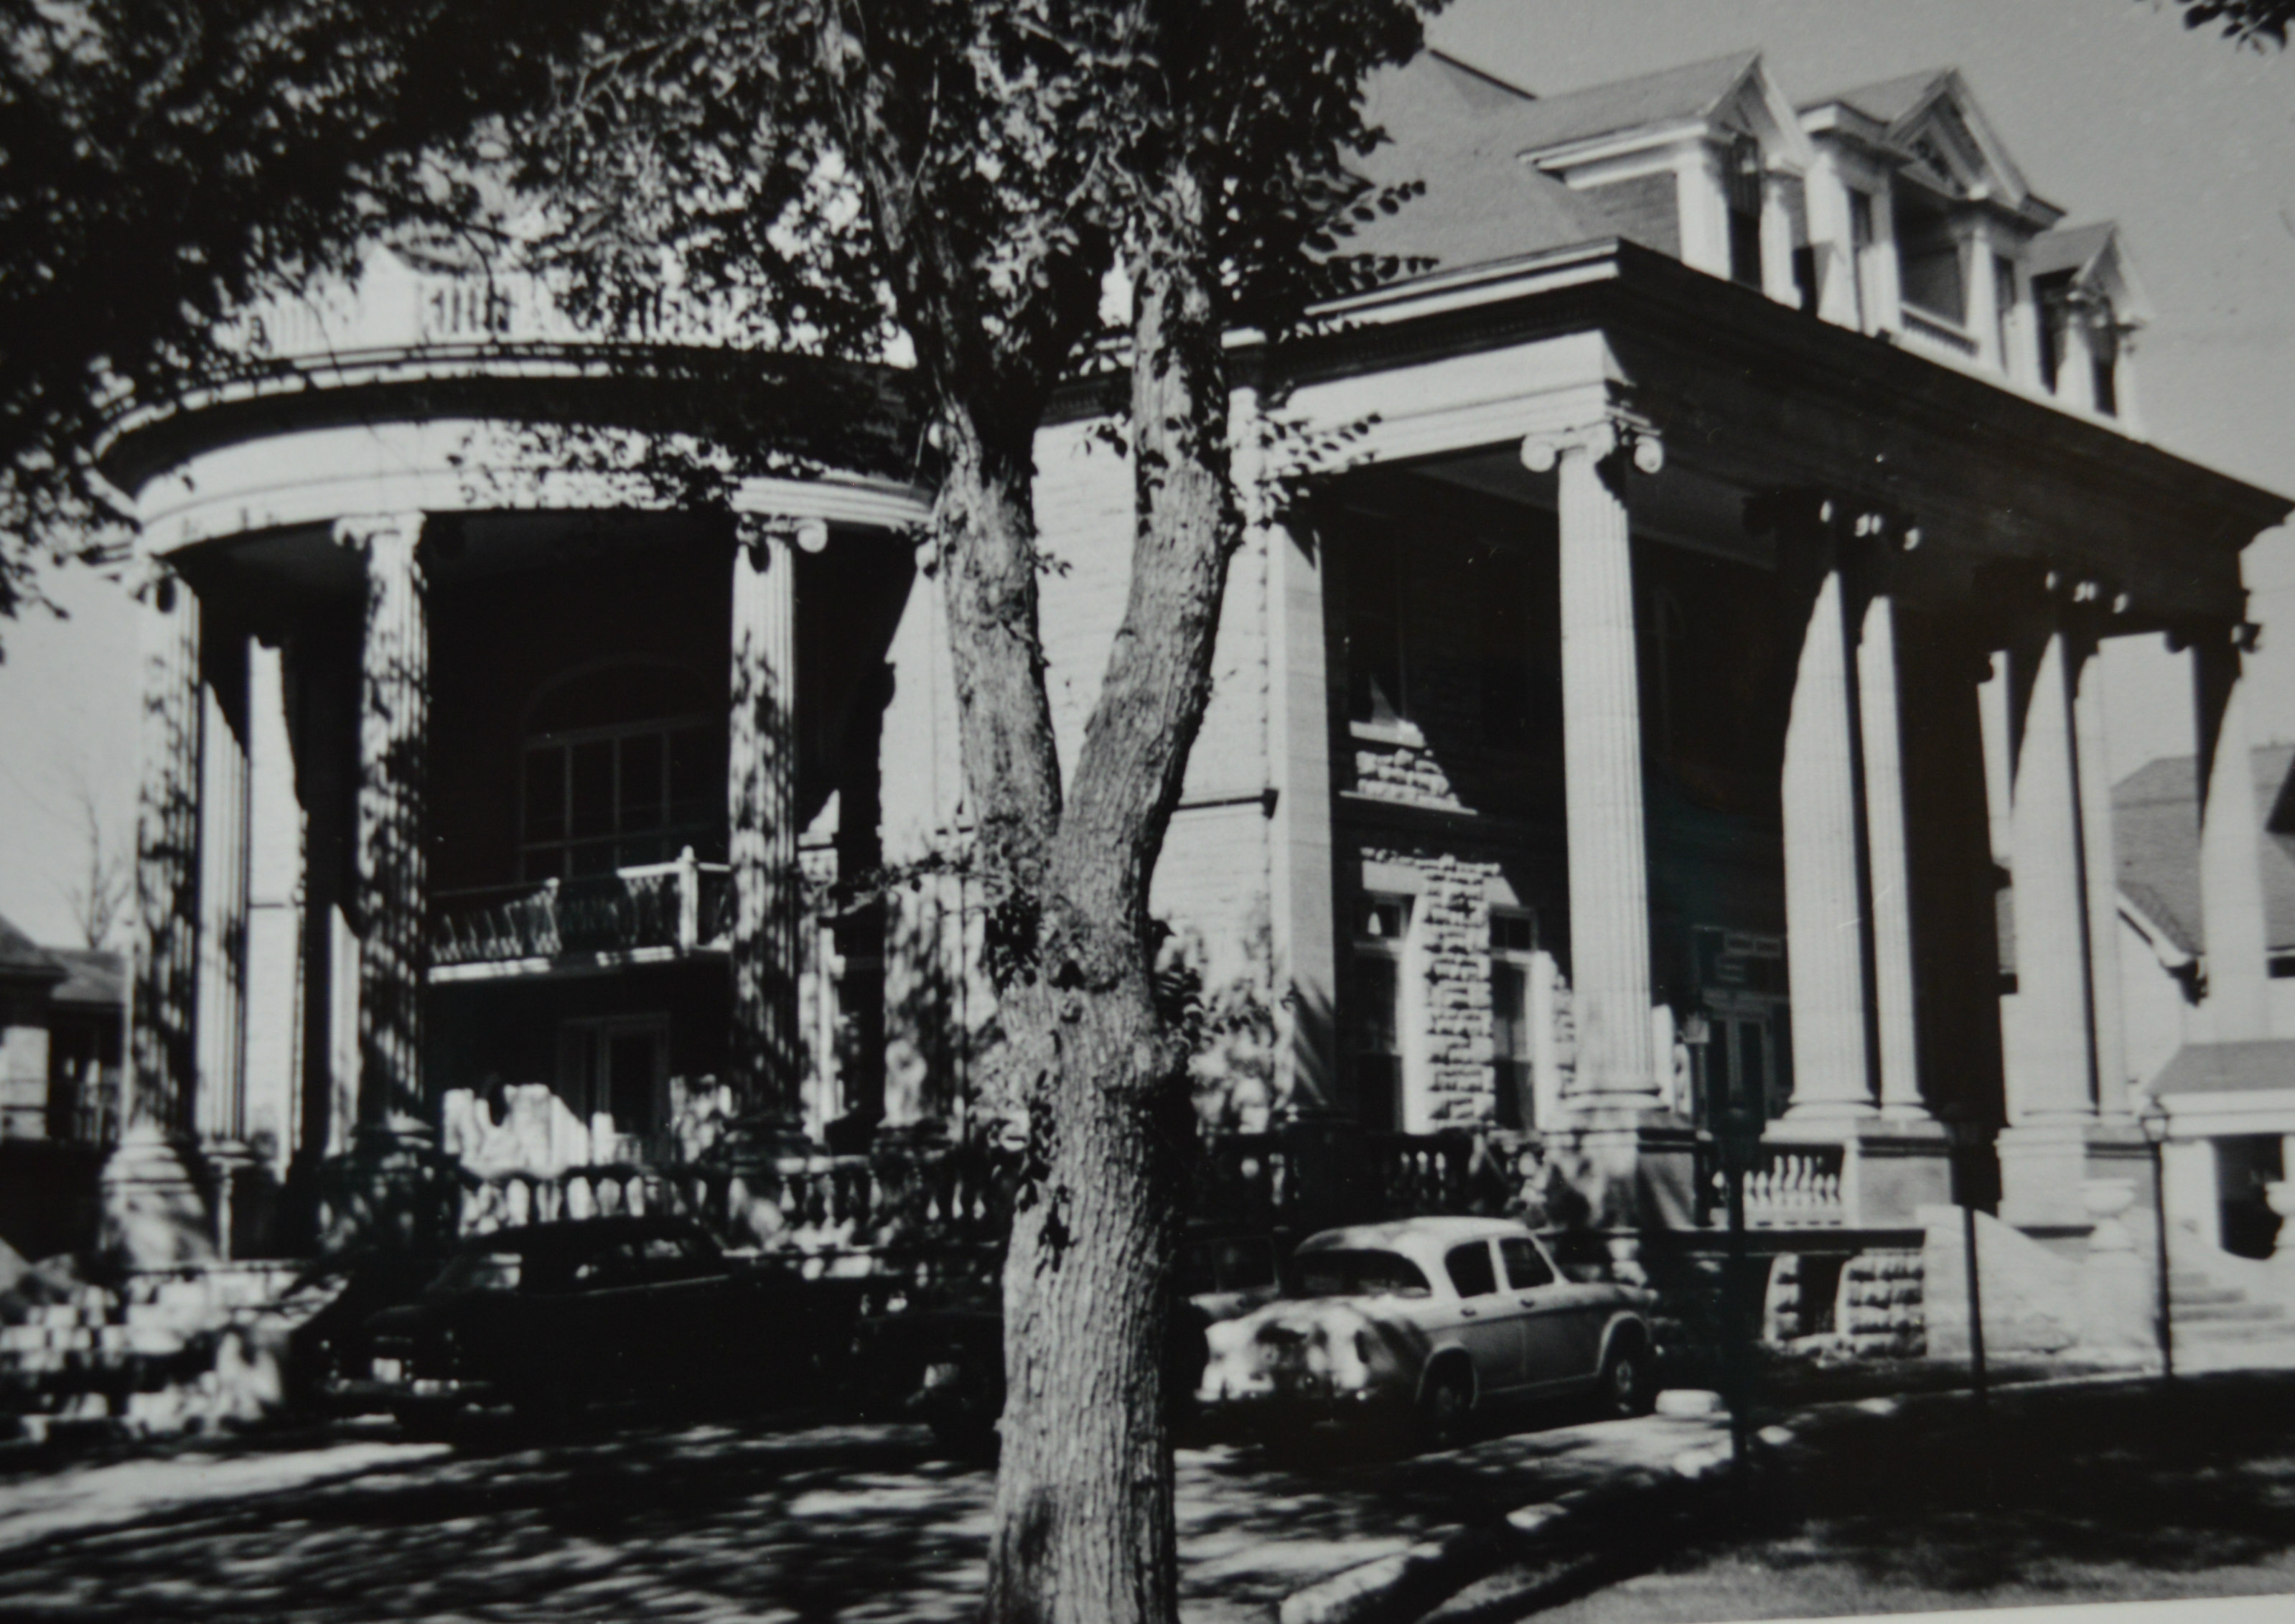 Thomas Kelly's house, shown in a photo from 1964. (Manitoba Archives)